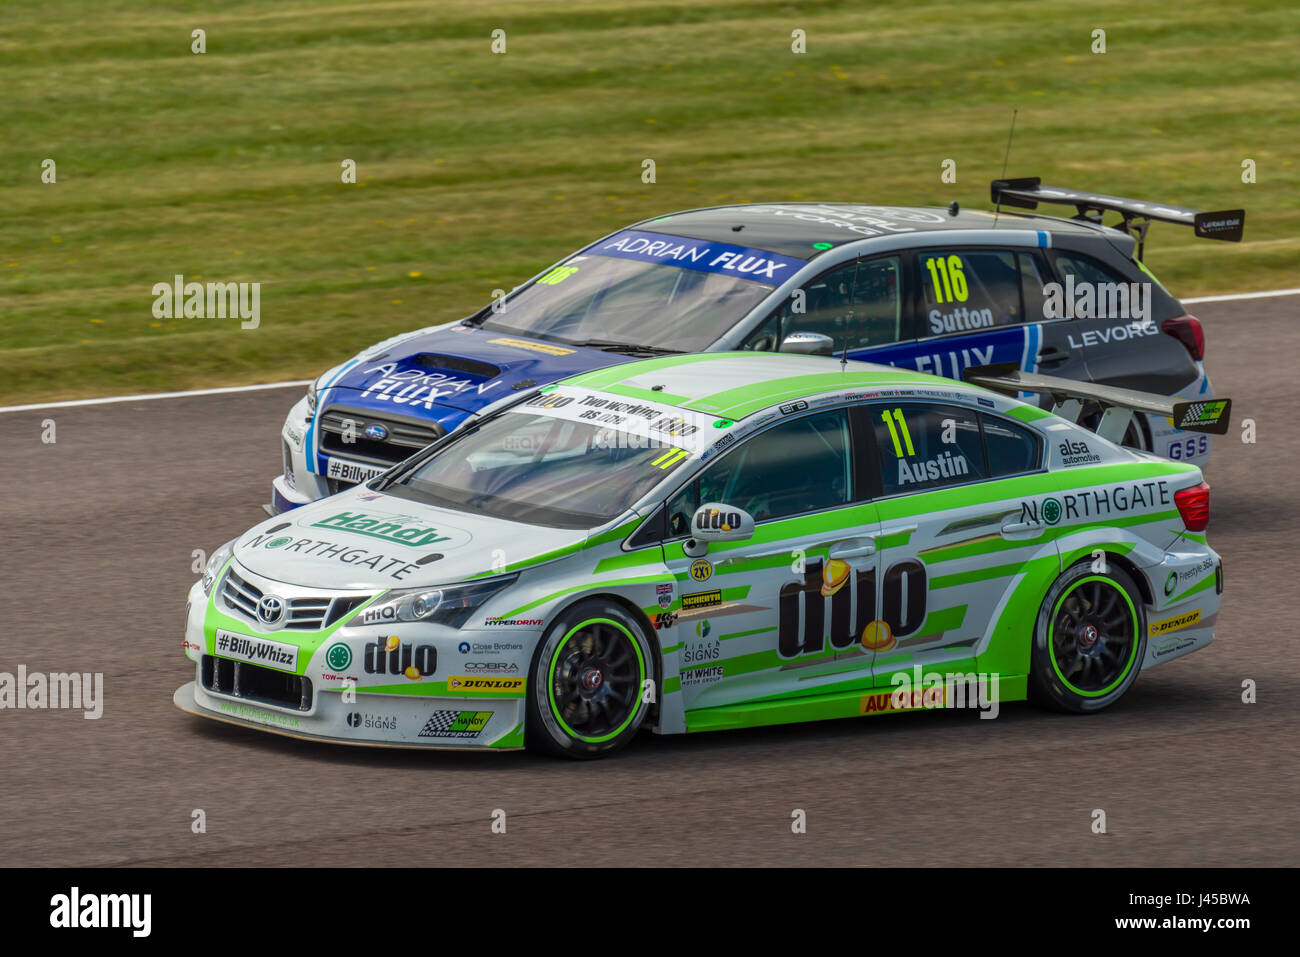 BTCC Drivers Austin and Sutton competing at Thruxton Circuit, Hampshire, on Sunday 7th May 2017. - Stock Image